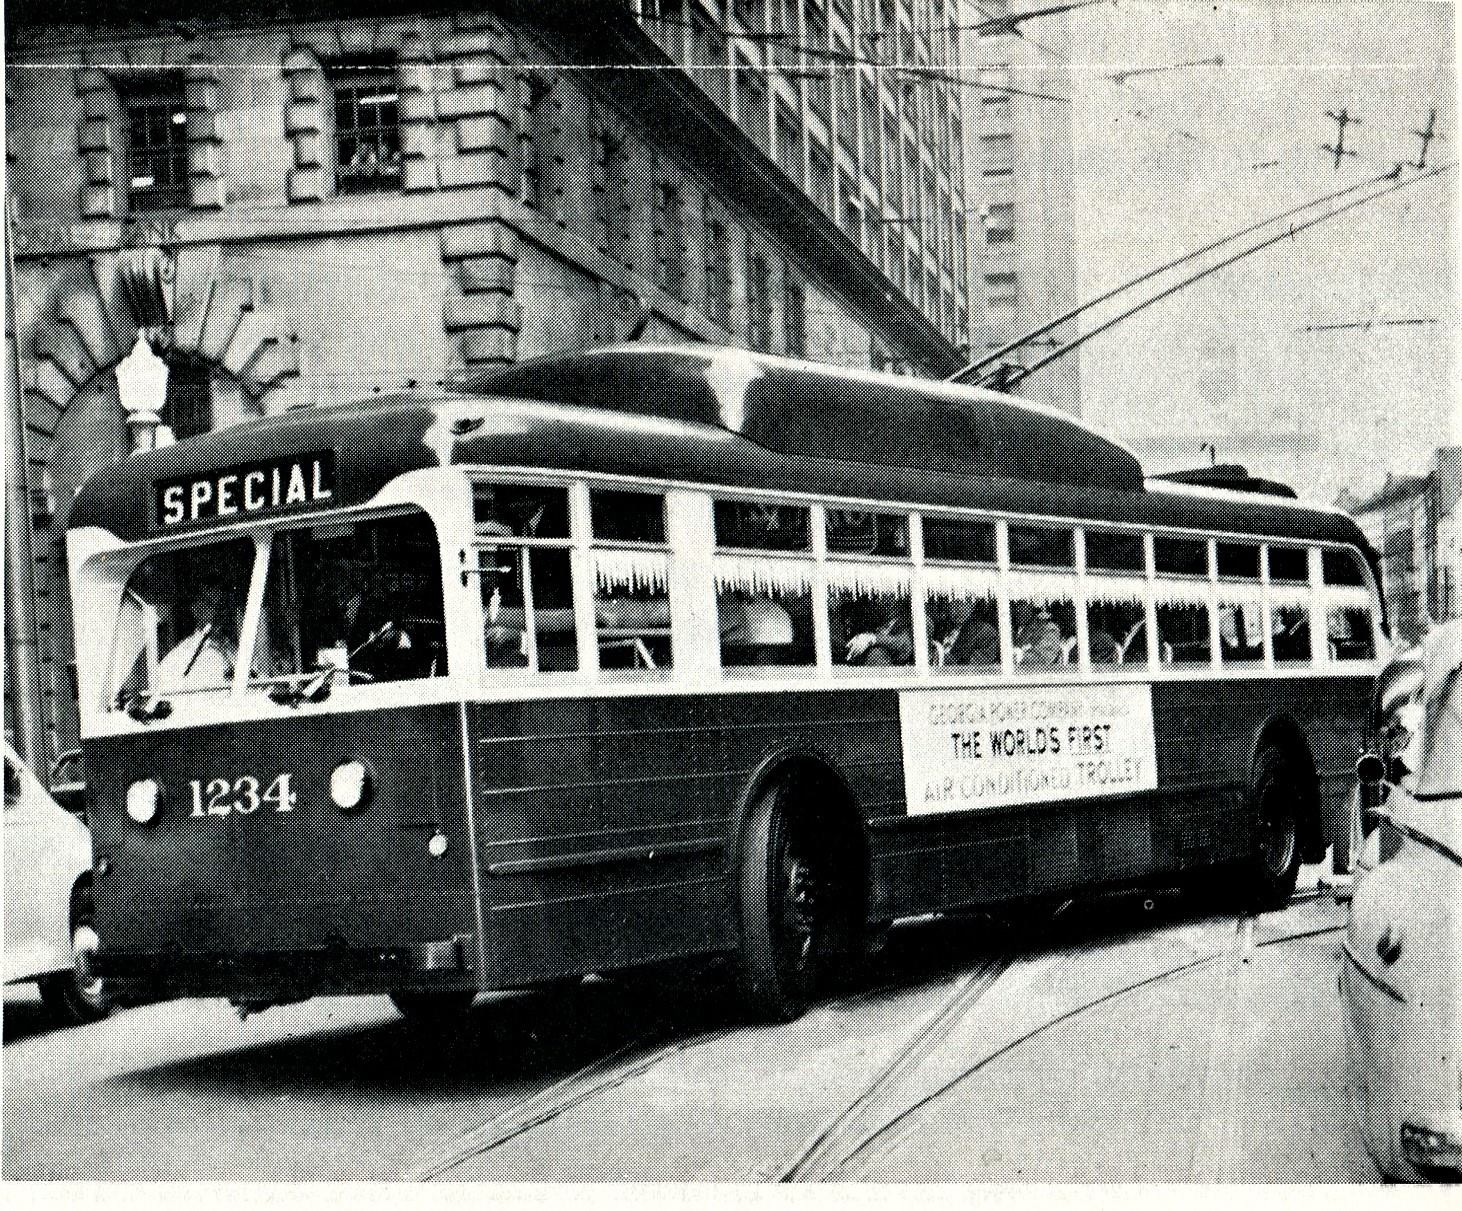 Georgia Power Company S 1234 Was The First Air Conditioned Trolley Coach In 1944 Gpc Put This Pullman Coach On The Streets To The Bus Terminal Bus Stop Fleet